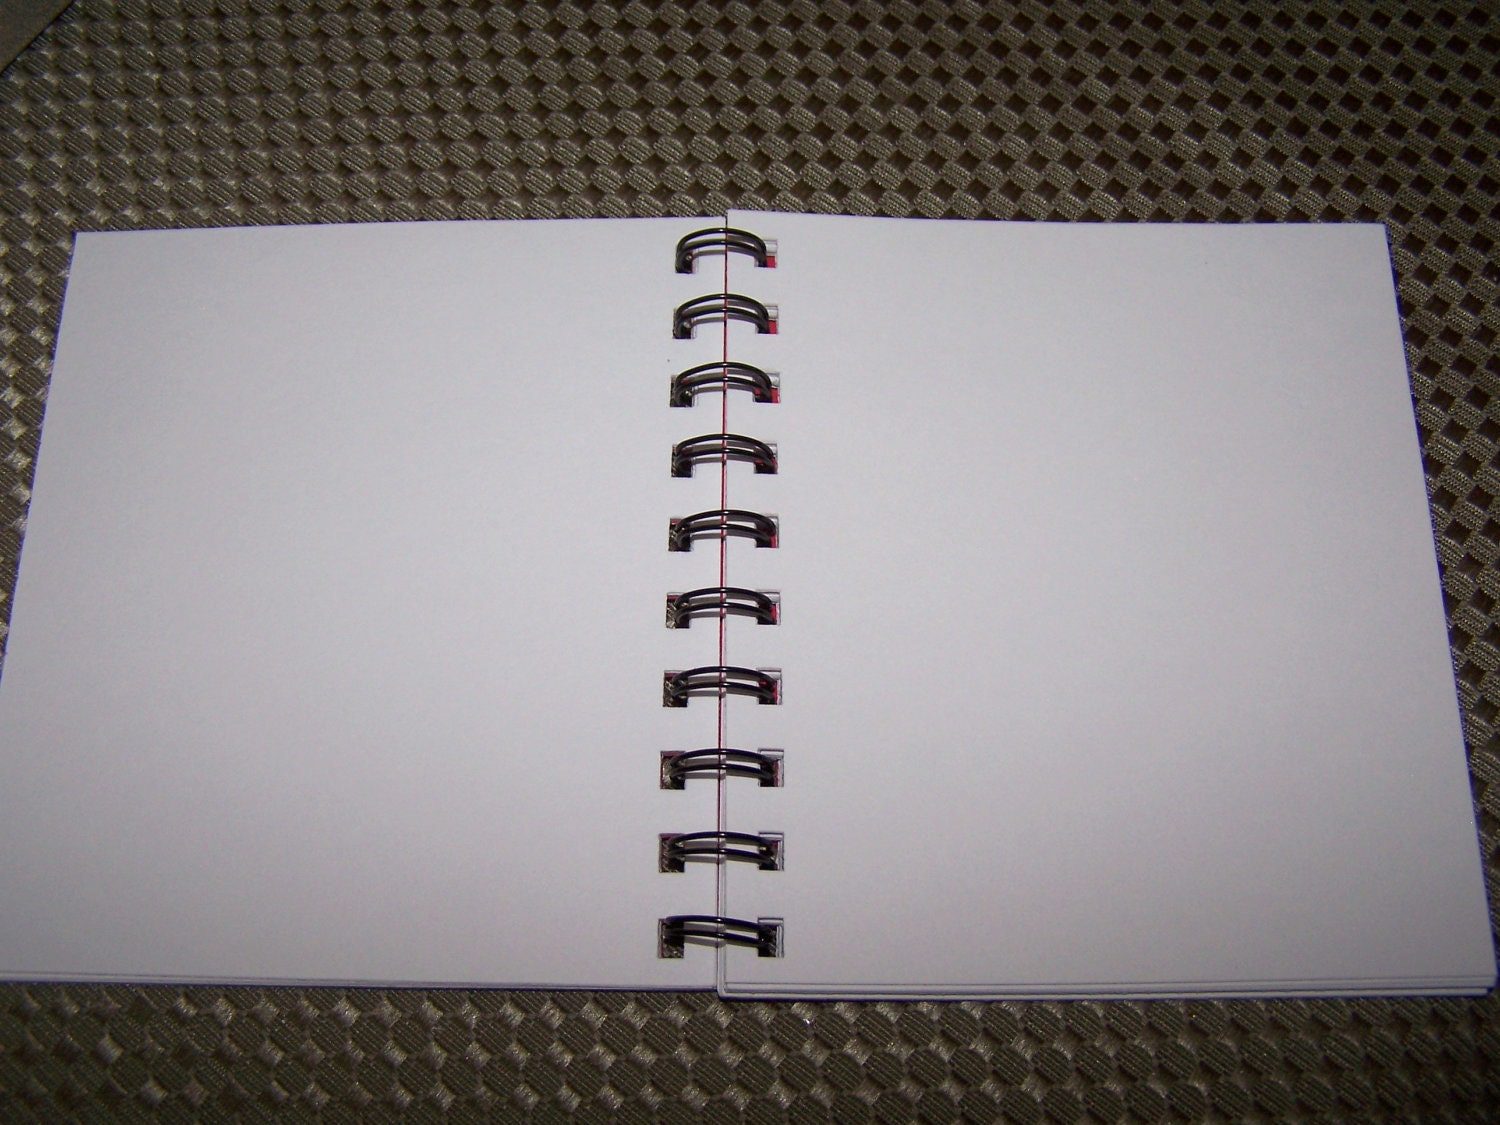 Notebook Notepad Recycled 7UP Recycled Notebook-